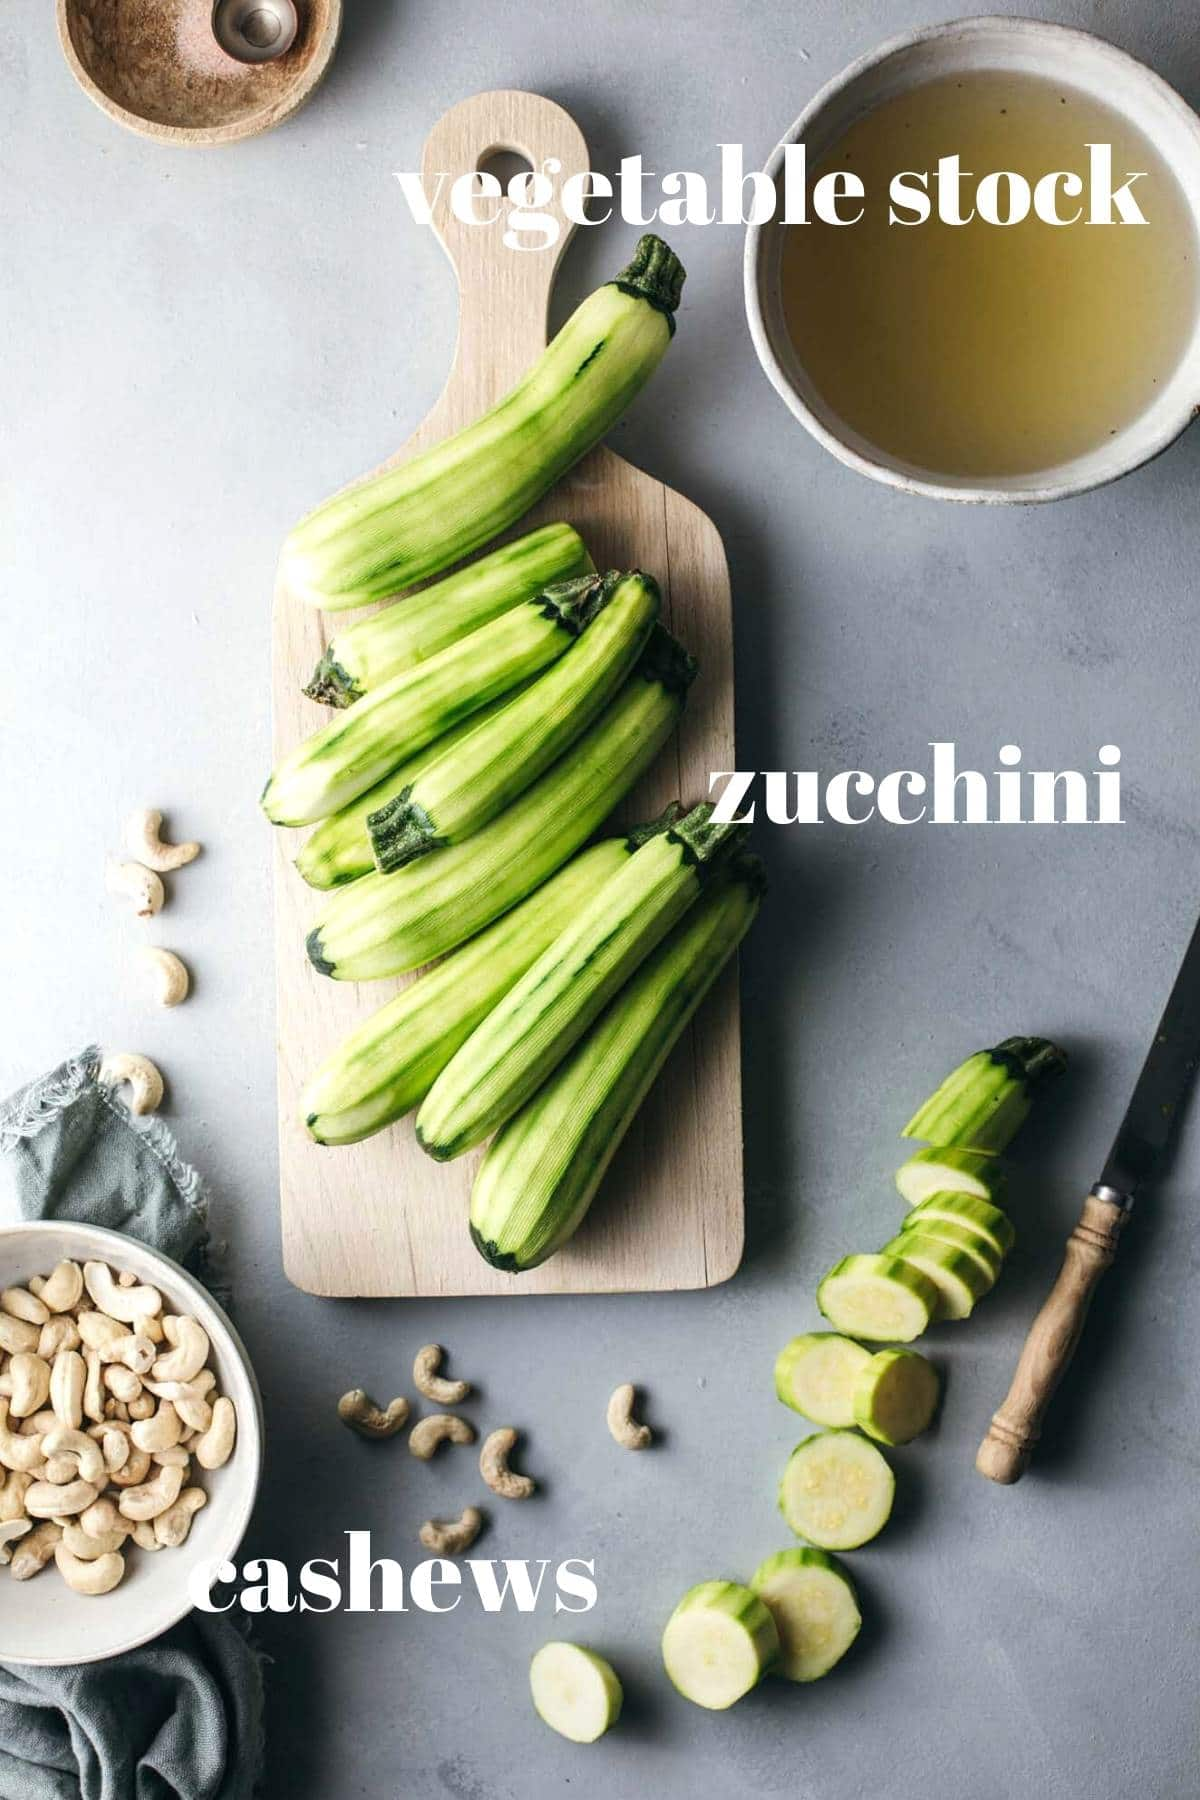 Zucchini soup ingredients on a kitchen bench.